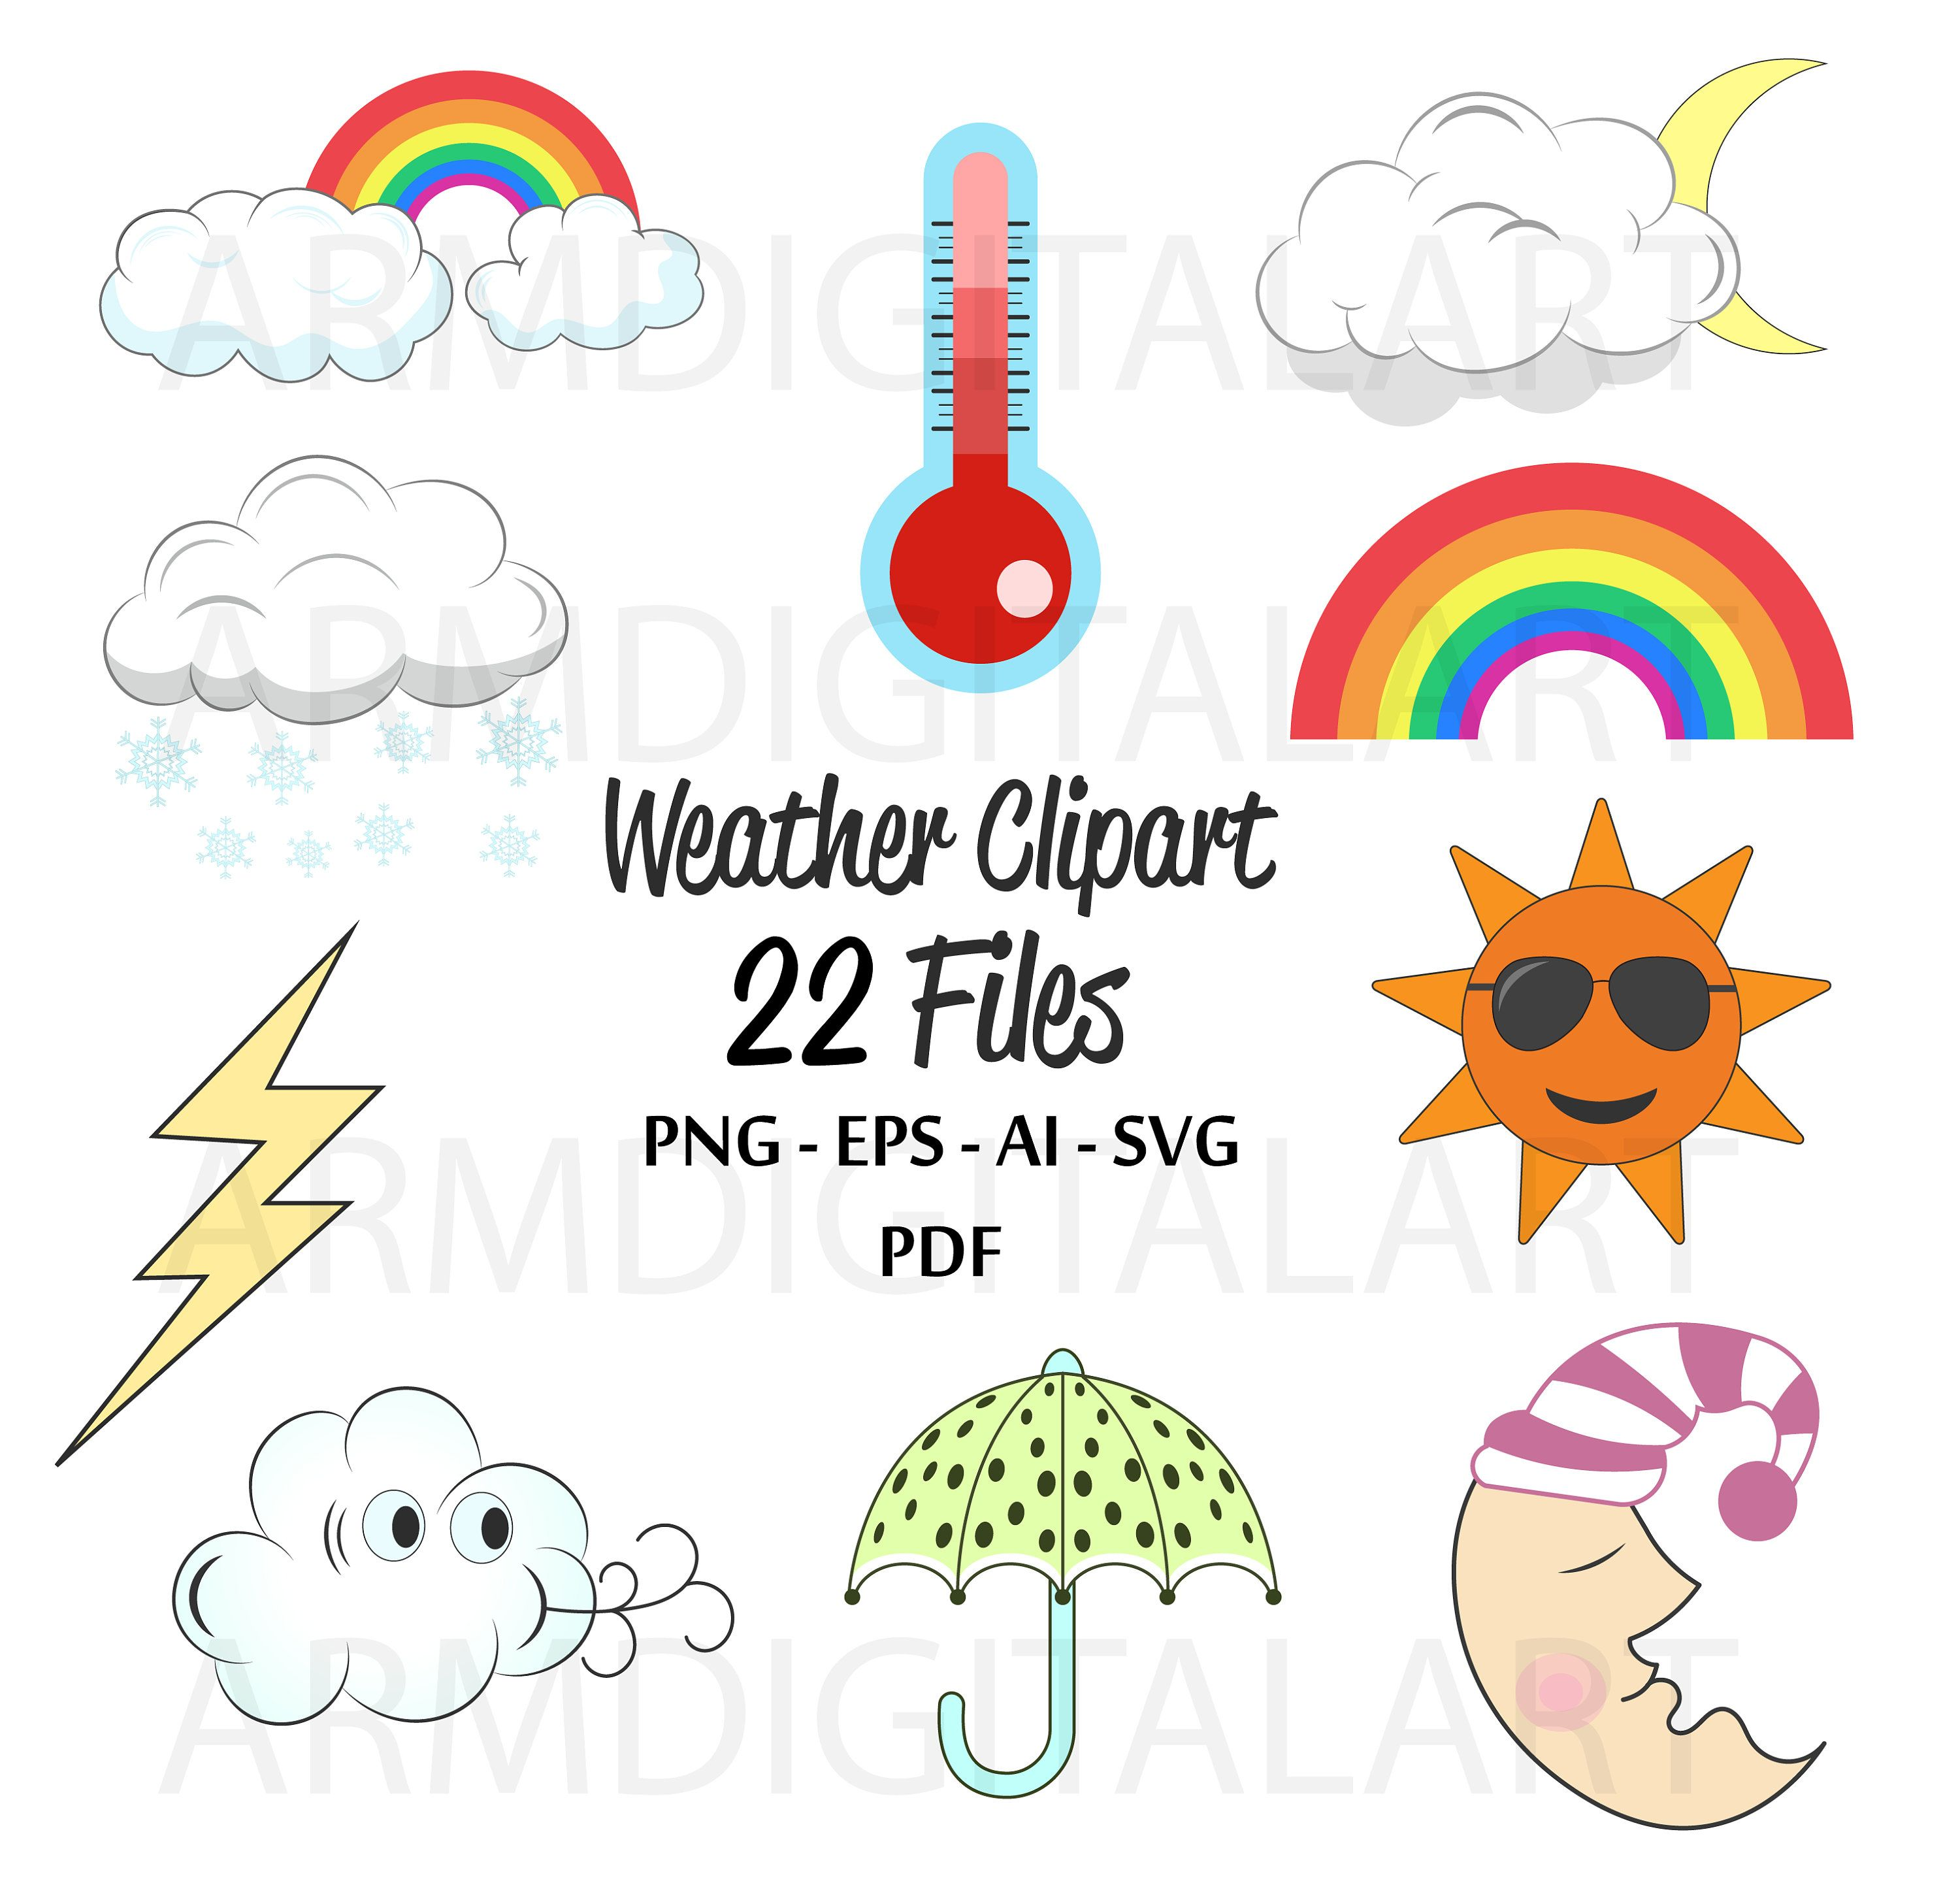 medium resolution of weather clipart weather graphics commercial use forecast clipart planner accessories weather icons cloud clipart sun vector files by armdigitalart